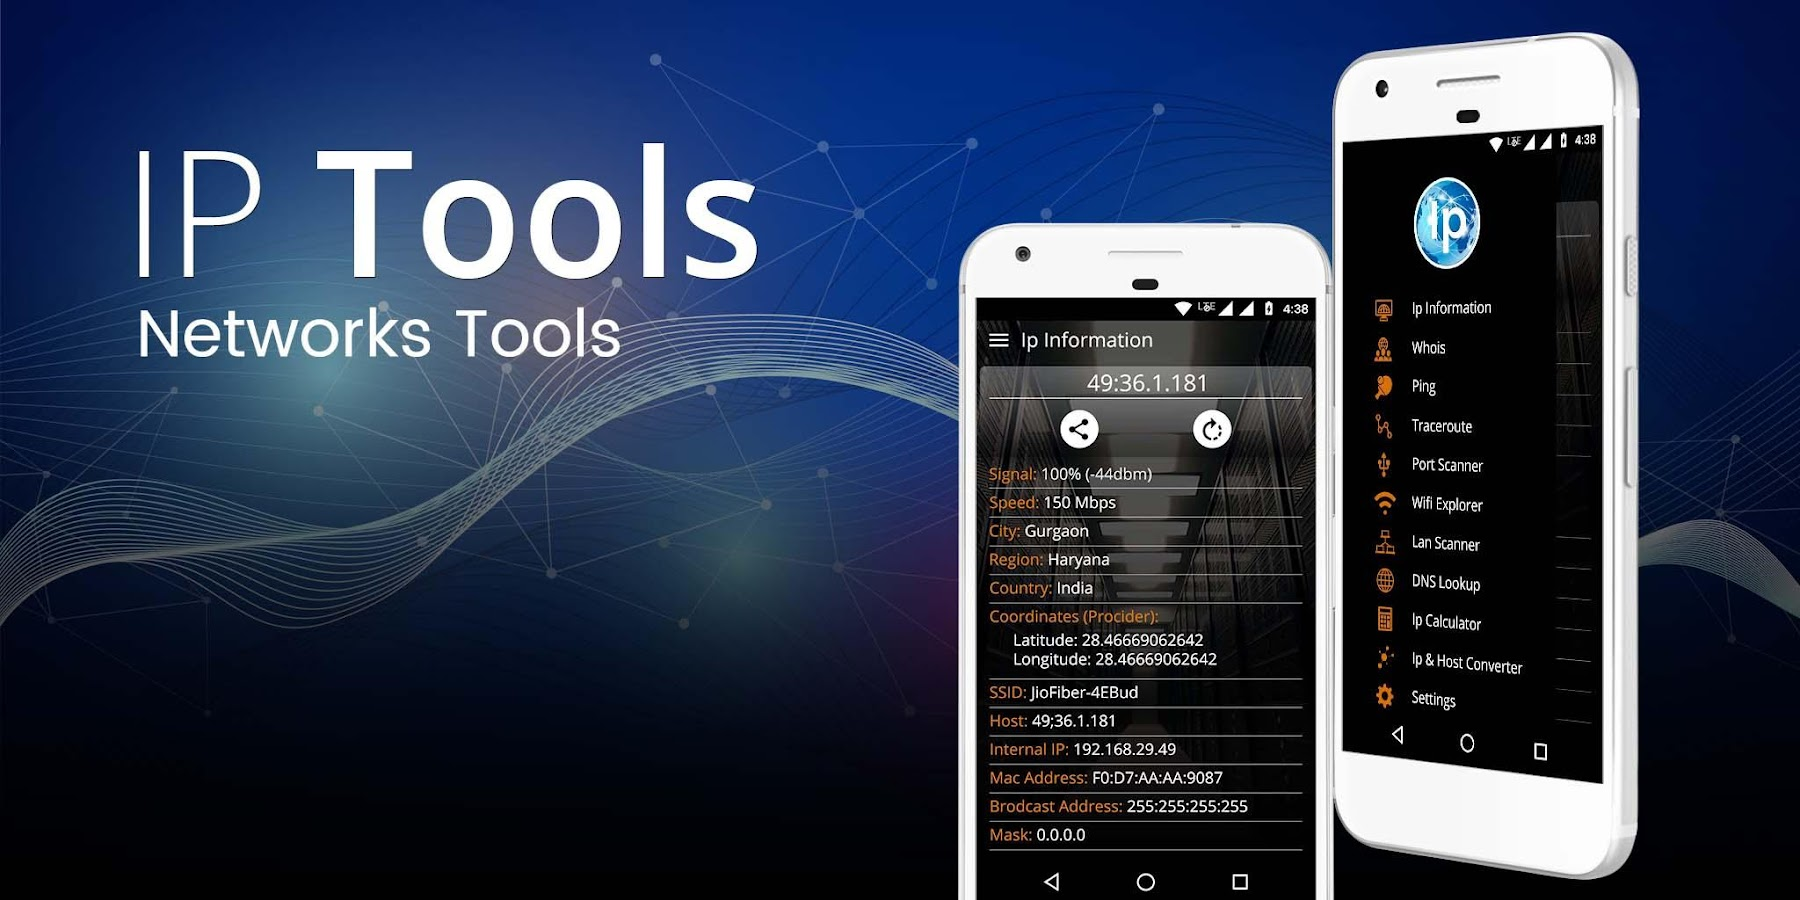 IP Tools - Network Utilities 2.12 APK Download - Android Tools Apps